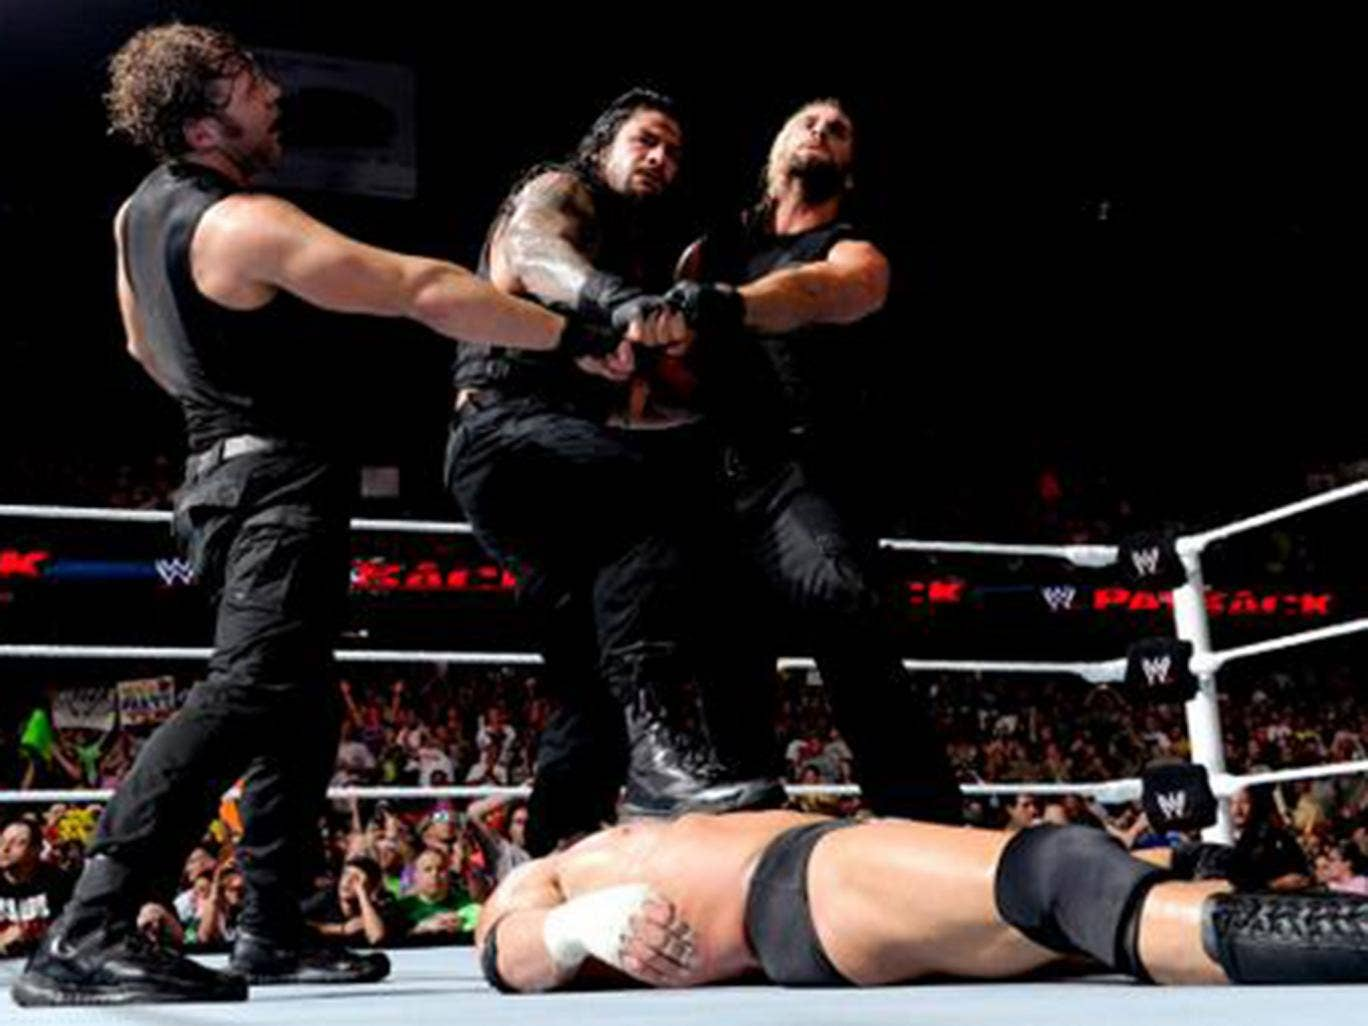 The Shield celebrate their victory over Evolution at Payback